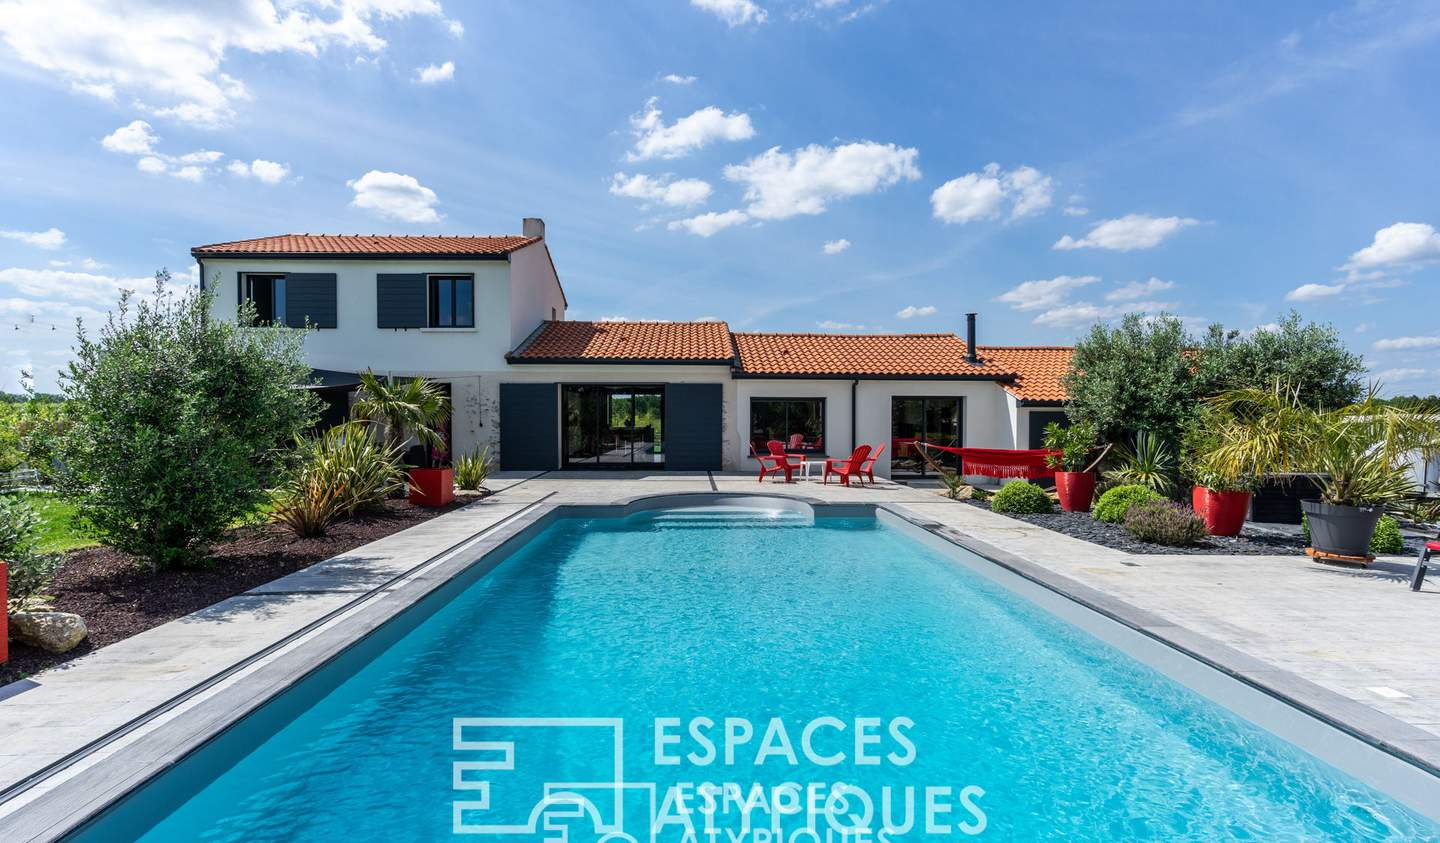 House with pool and terrace La Chapelle-Heulin